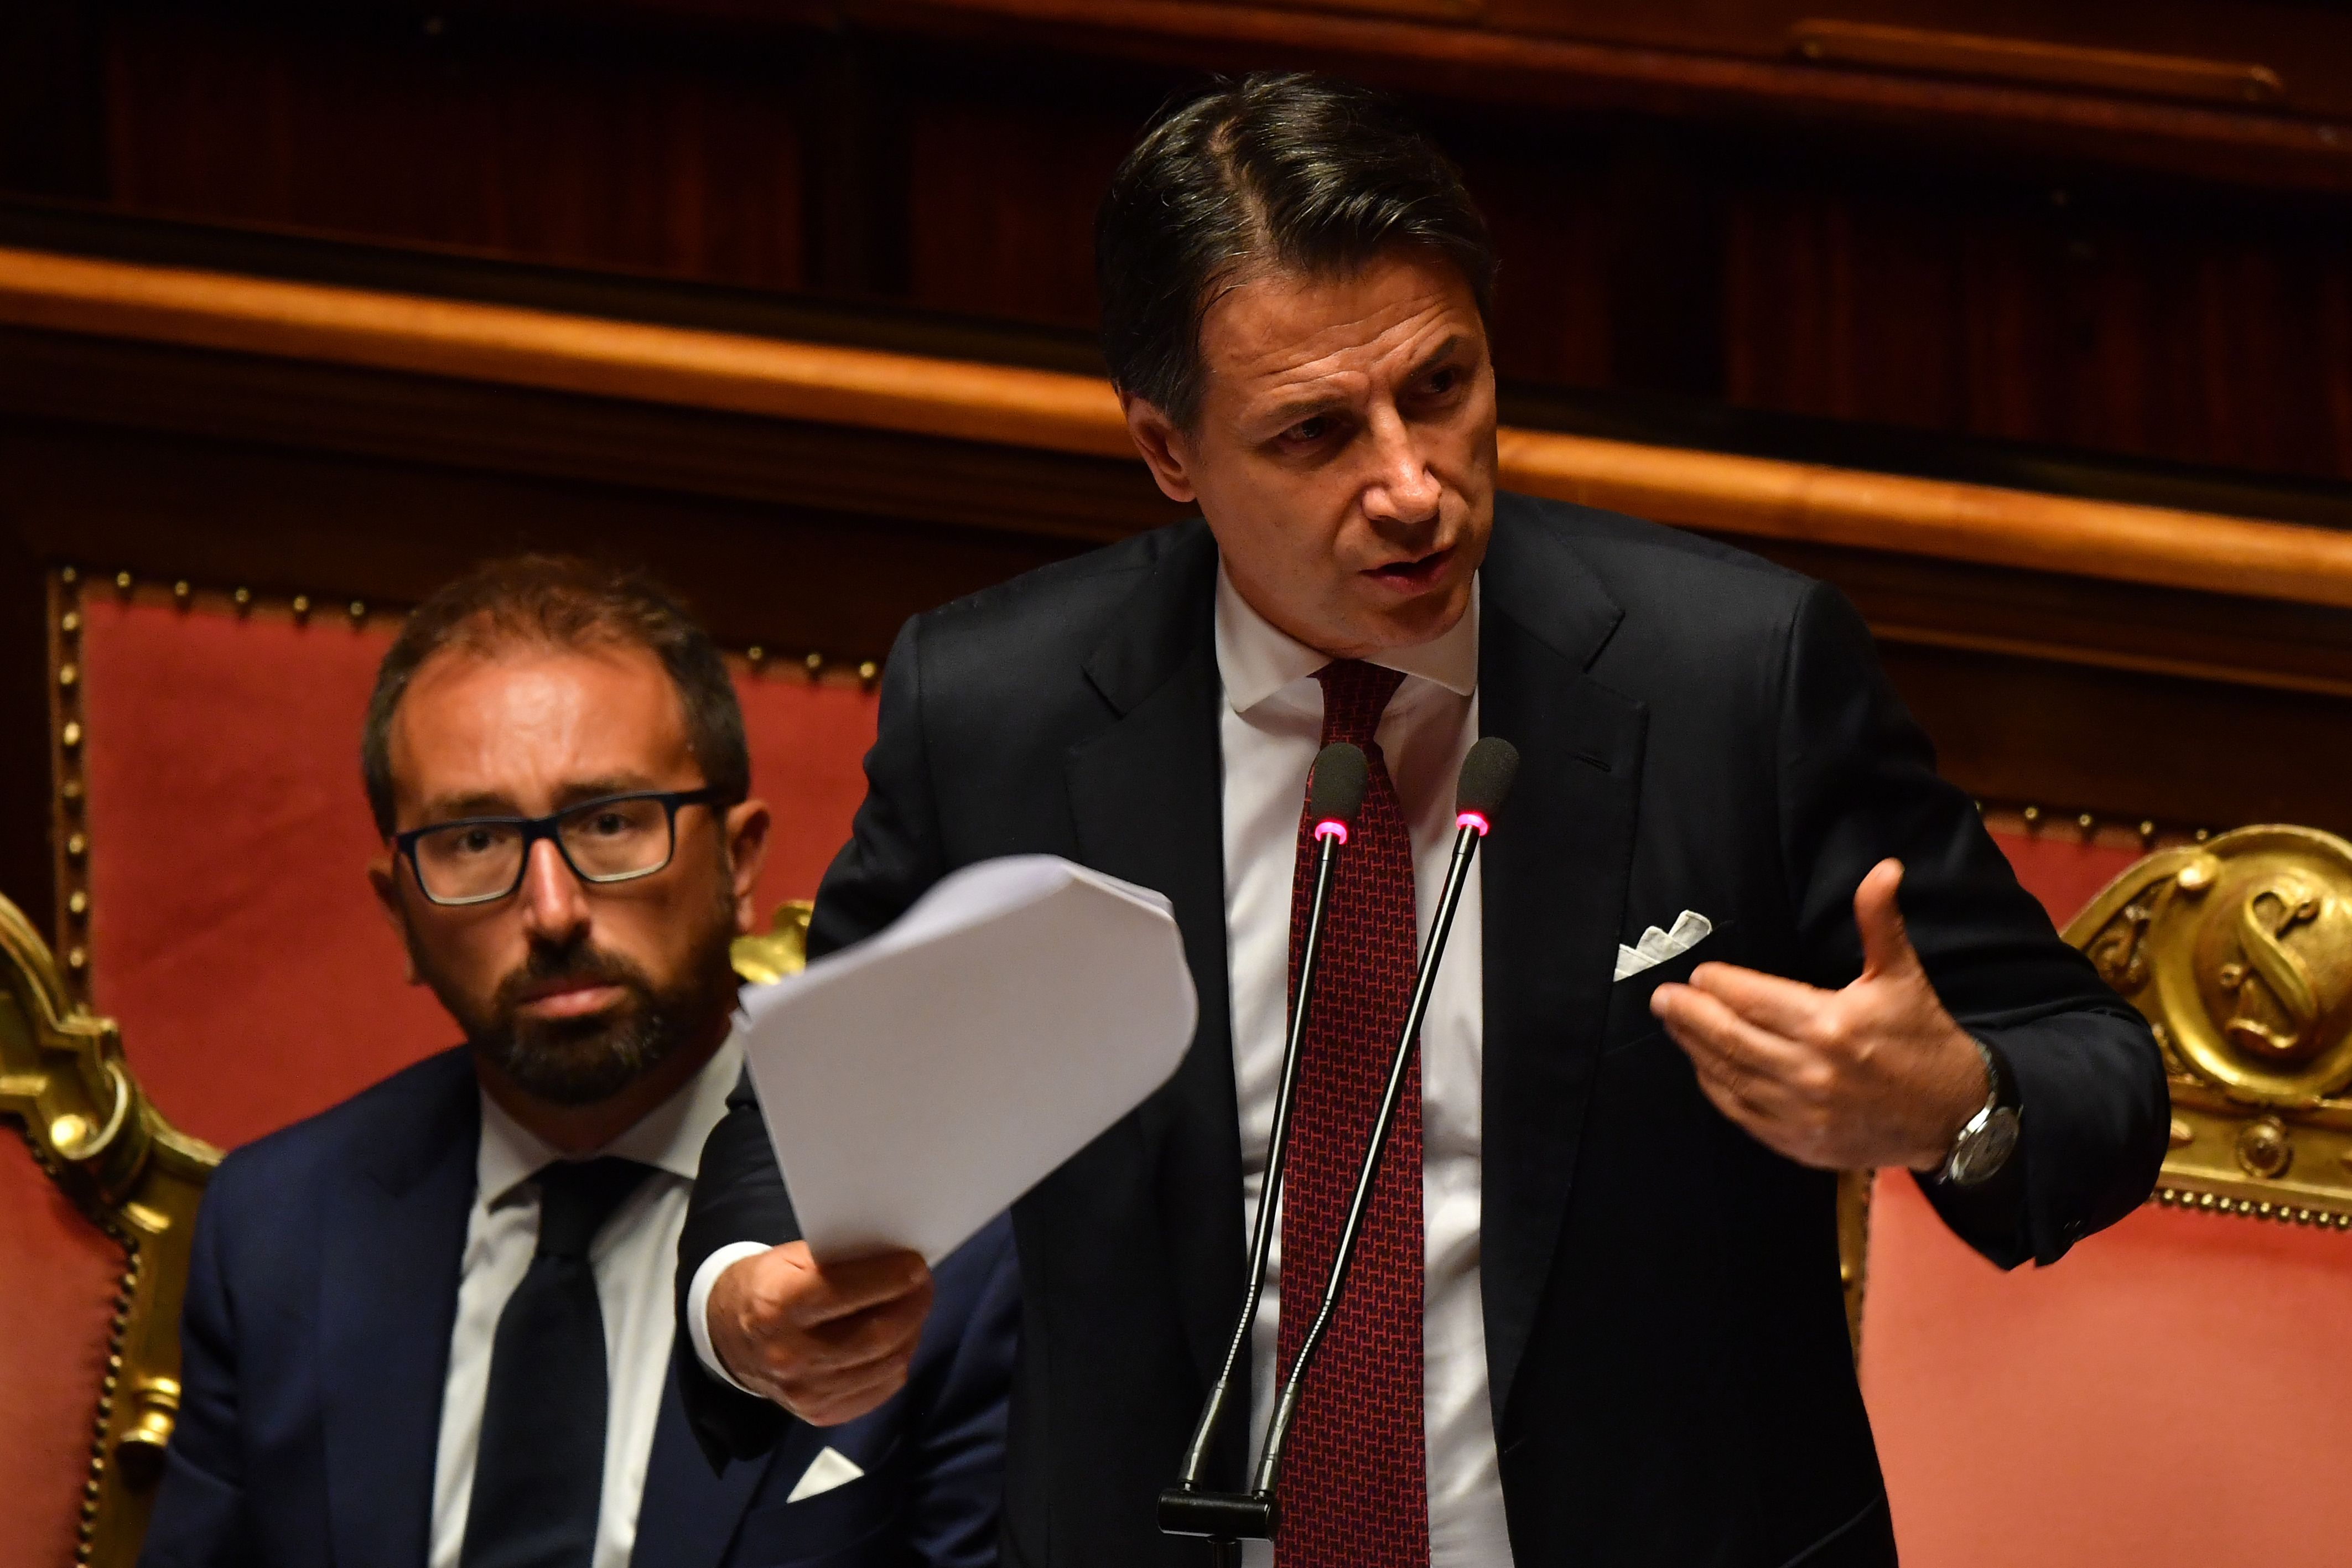 Italian Prime Minister Giuseppe Conte (R) gestures as he delivers a speech at the Italian Senate in Rome on Aug. 20, 2019.